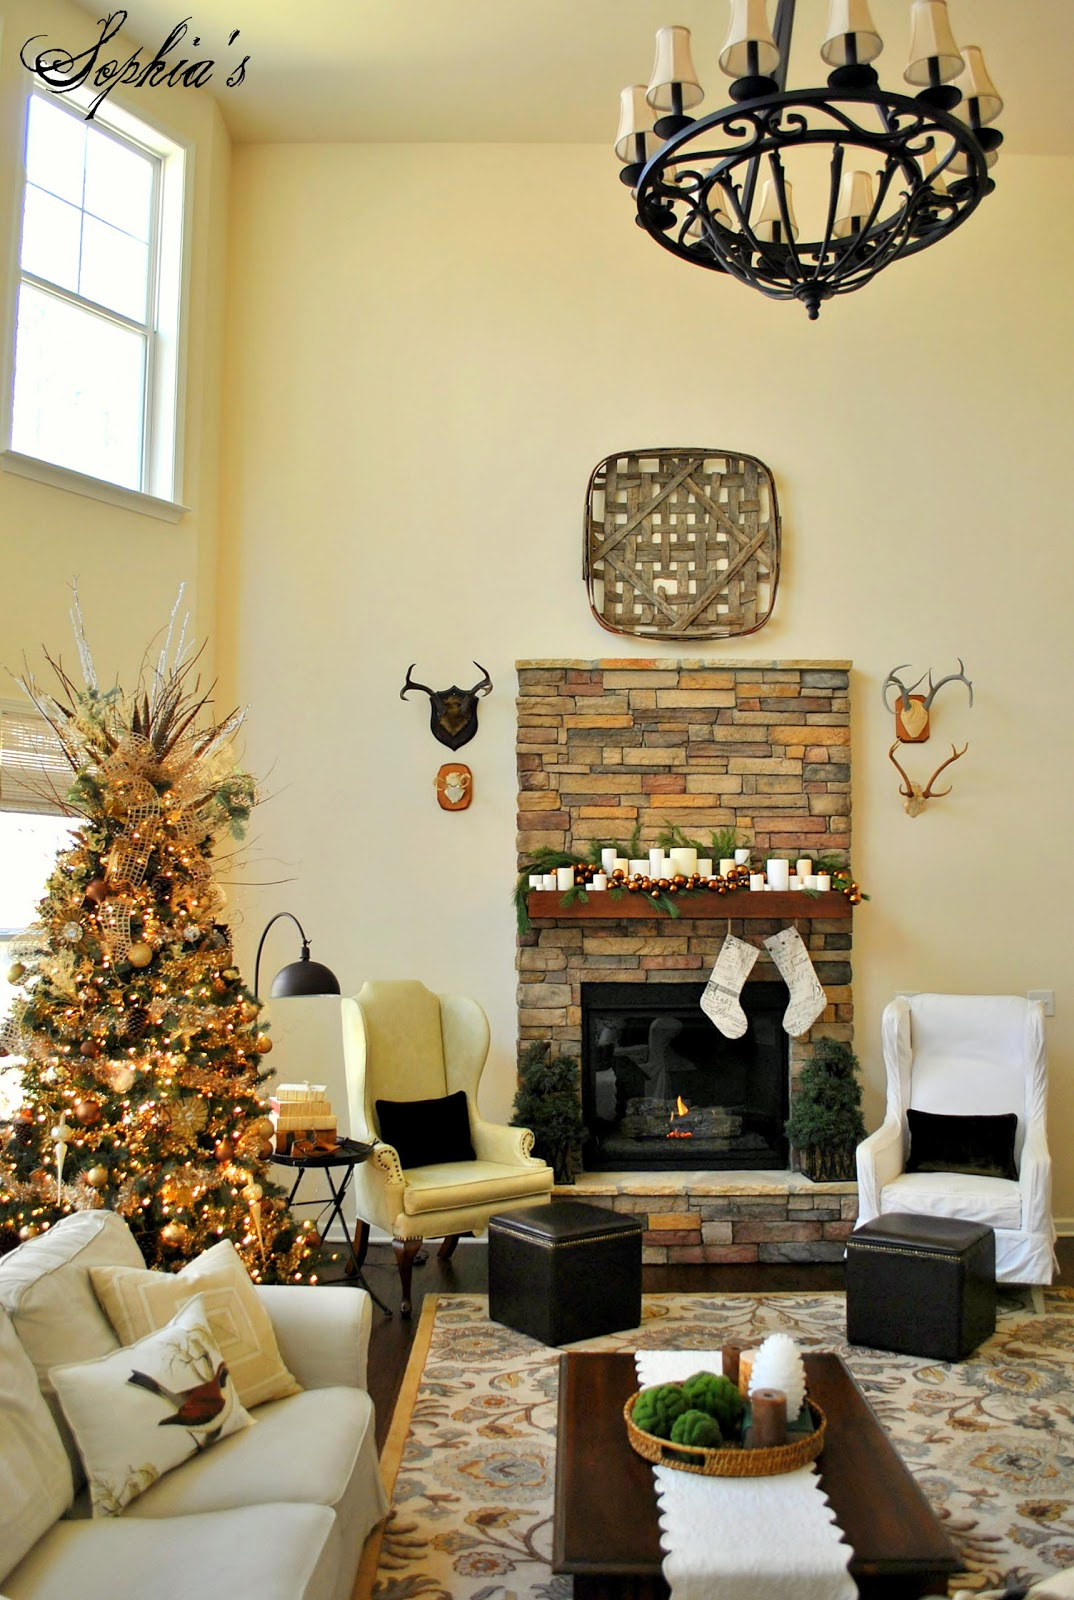 Decorating Great Room Living Area: Sophia's: Great Room Rustic Christmas